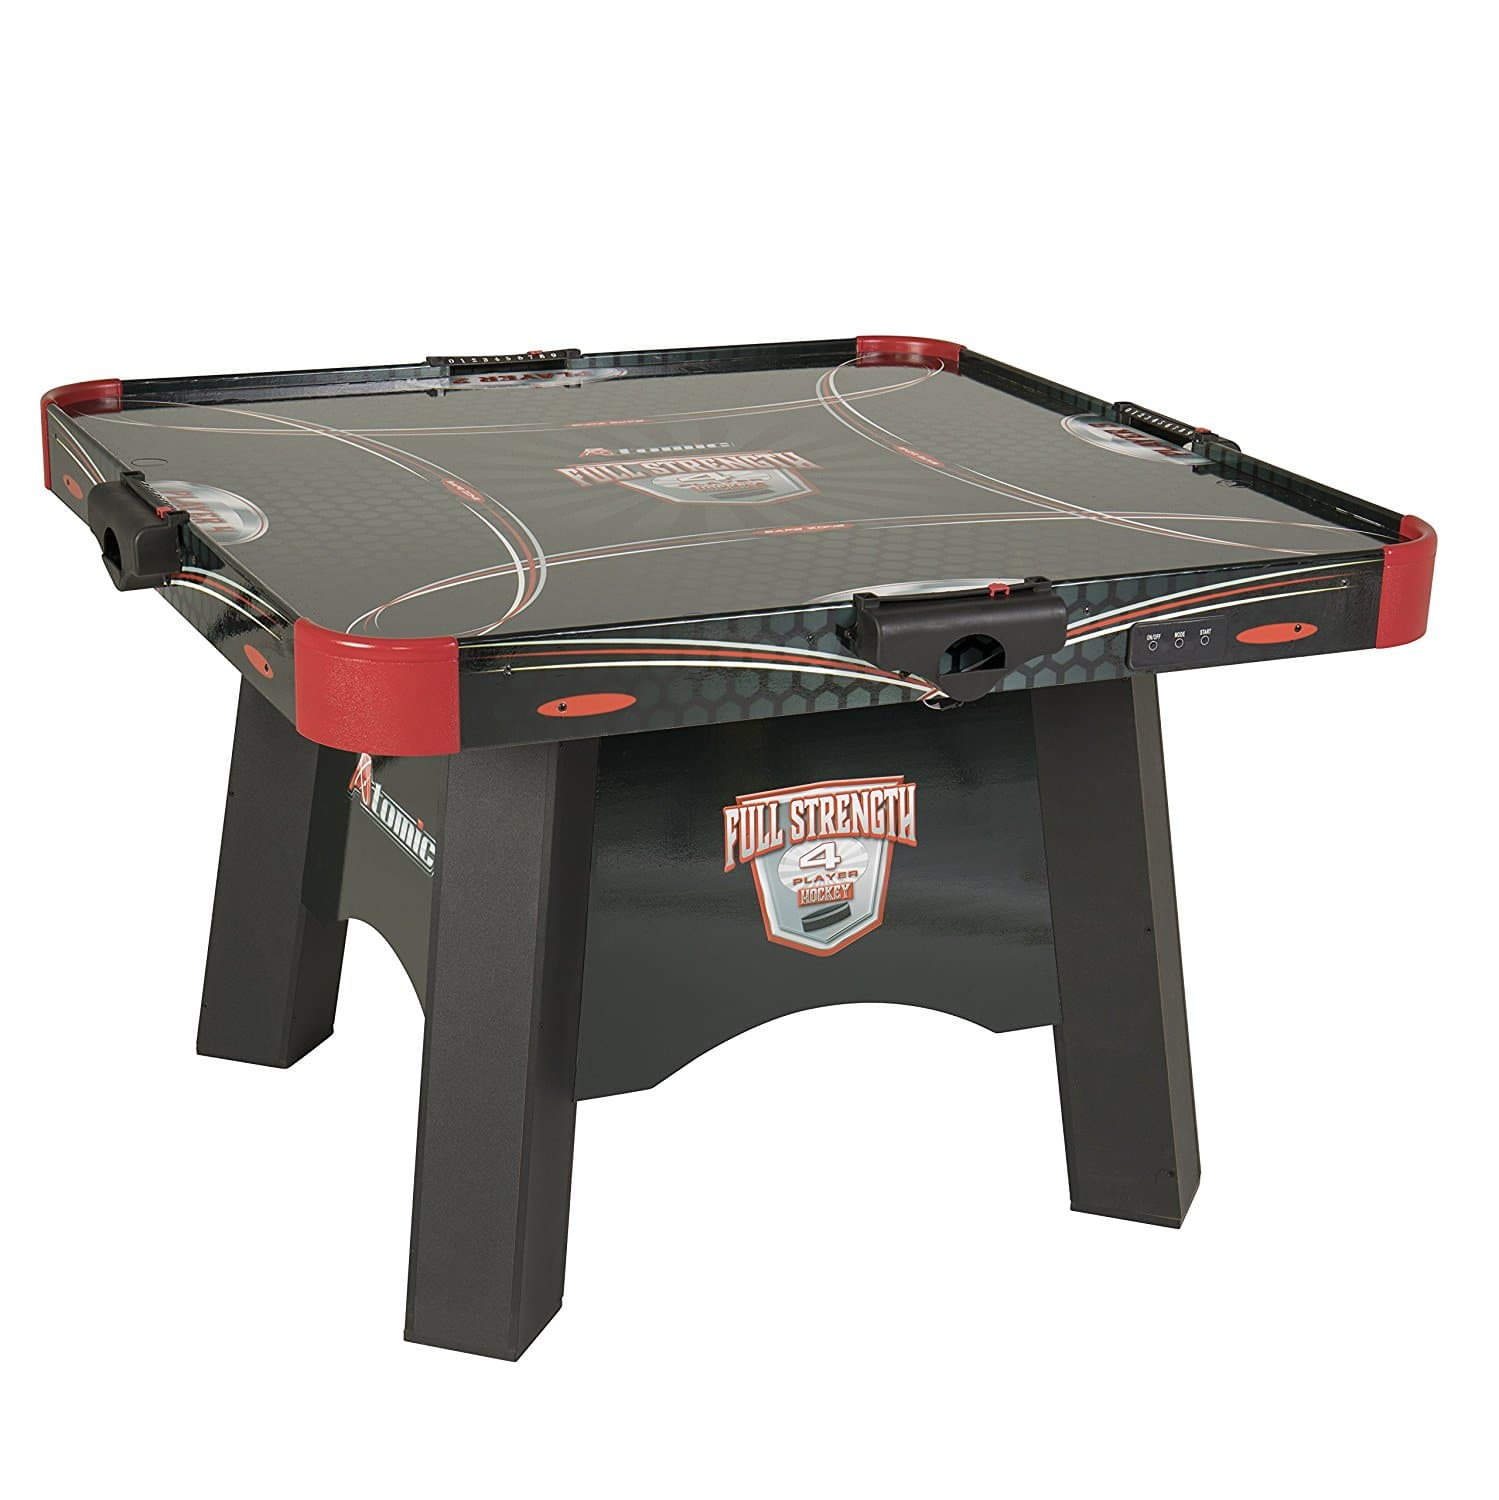 4-Player Air Hockey Table $86.14 @ Walmart